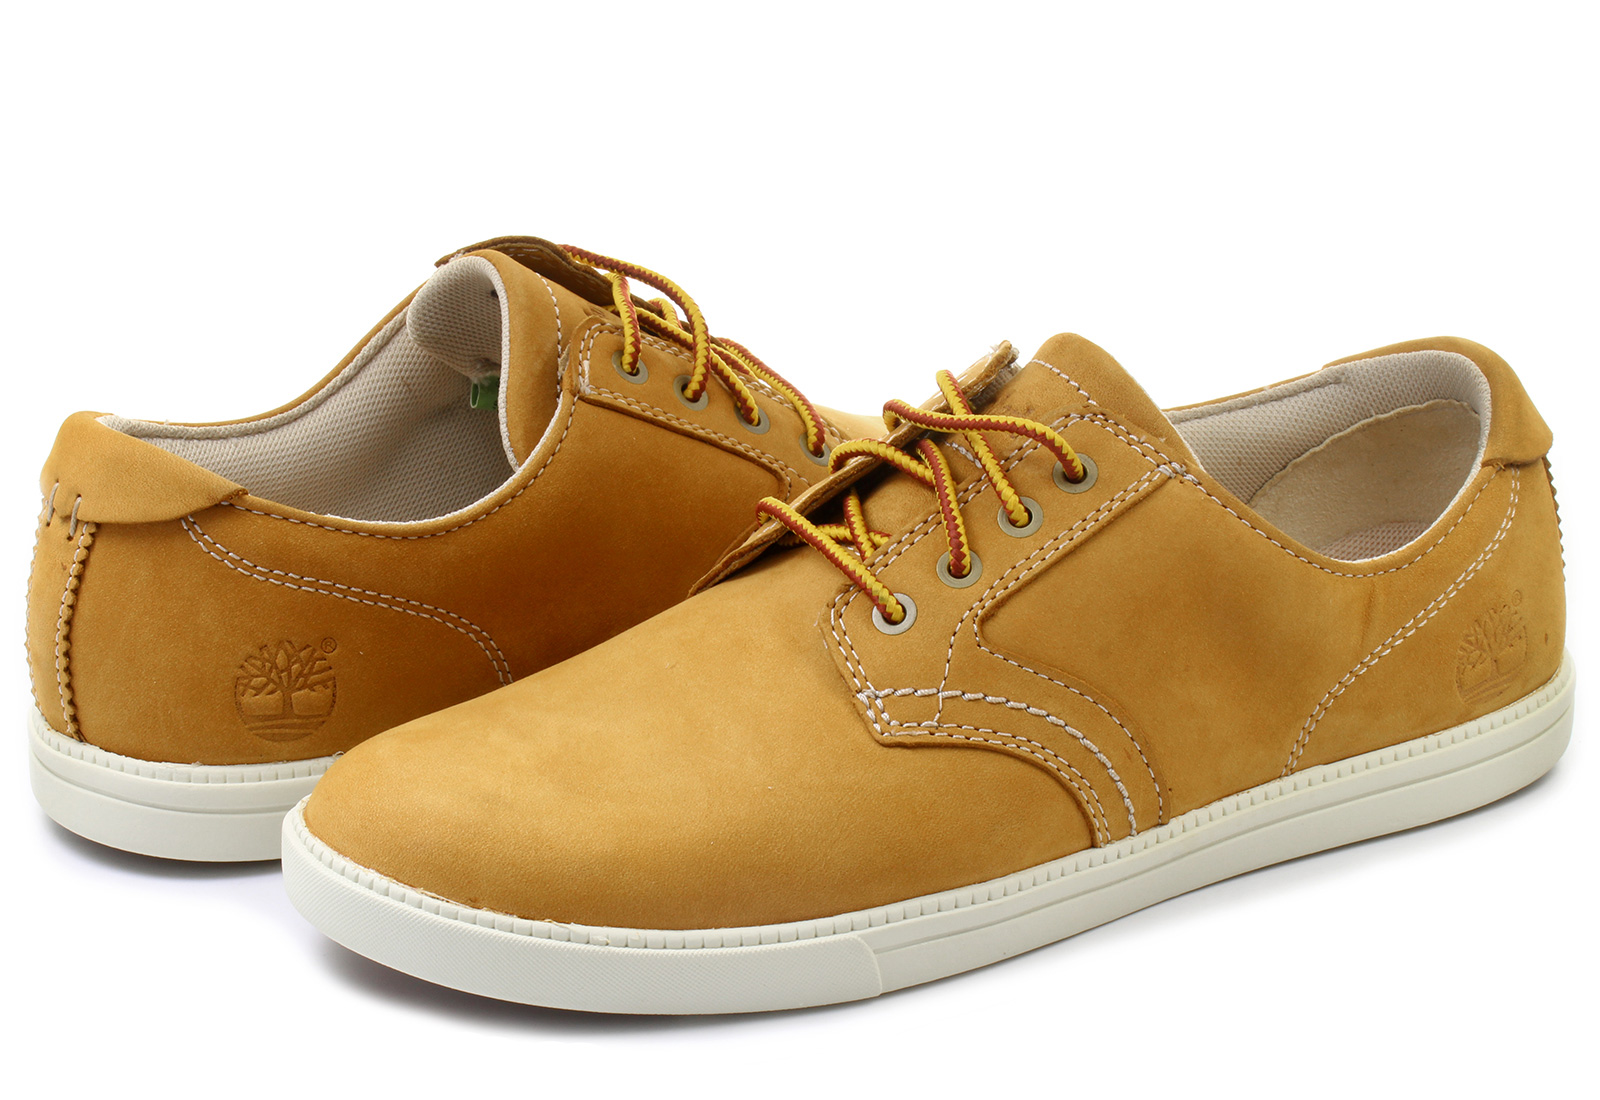 068631abcf Timberland Shoes Fulk Ox 6533r Whe Online Shop For